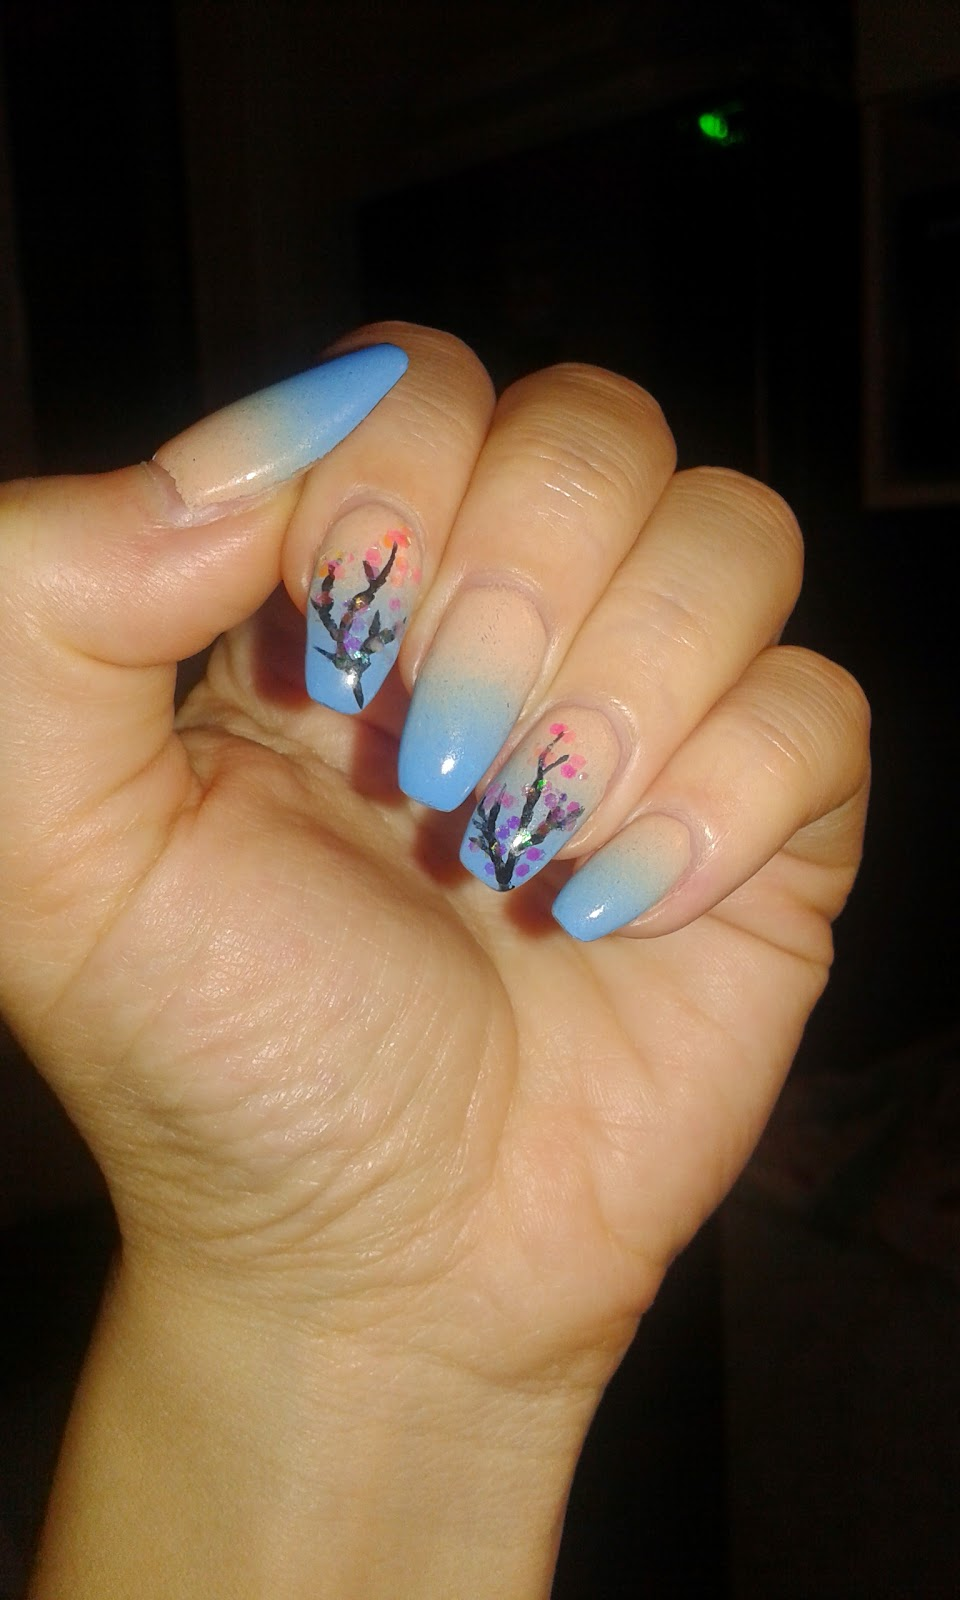 beauty, blue ombre nails, cherry blossom nails, diy nails, gel nails, nail art, nail design, nails, ombre nails